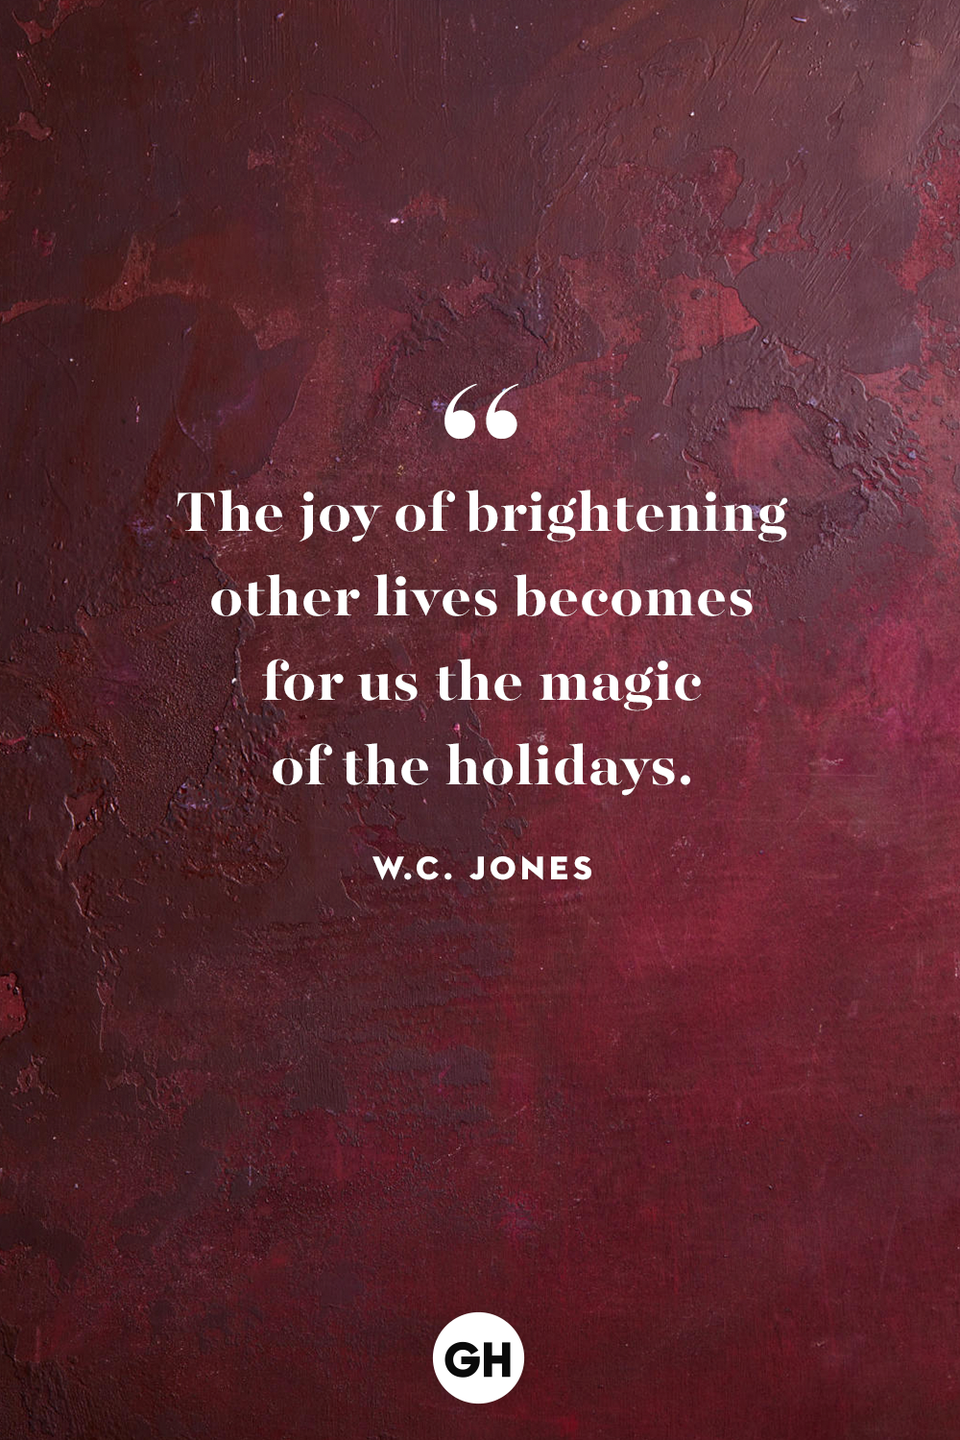 <p>The joy of brightening other lives becomes for us the magic of the holidays.</p>